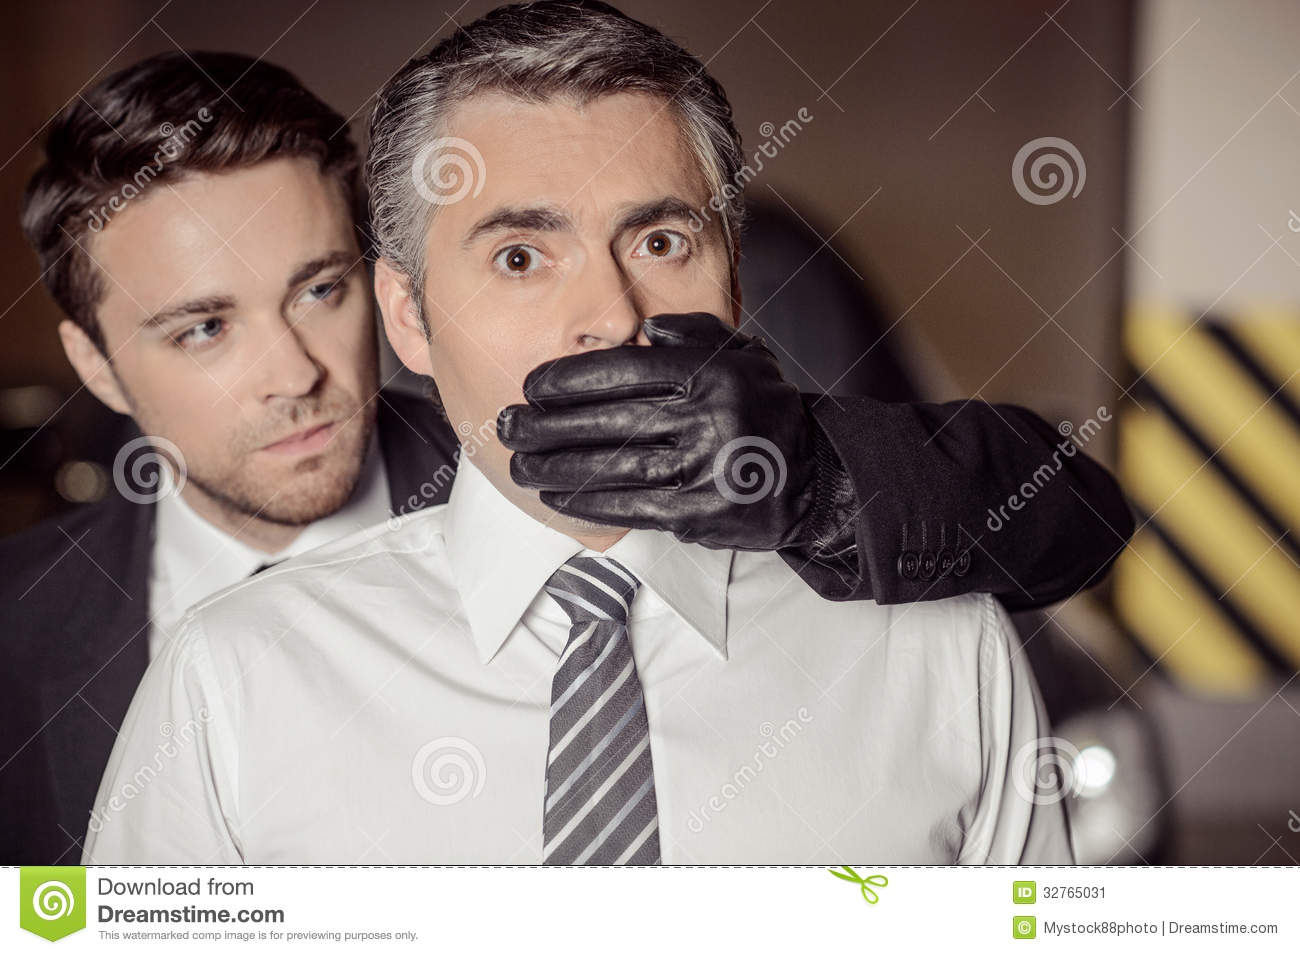 Glove over mouth